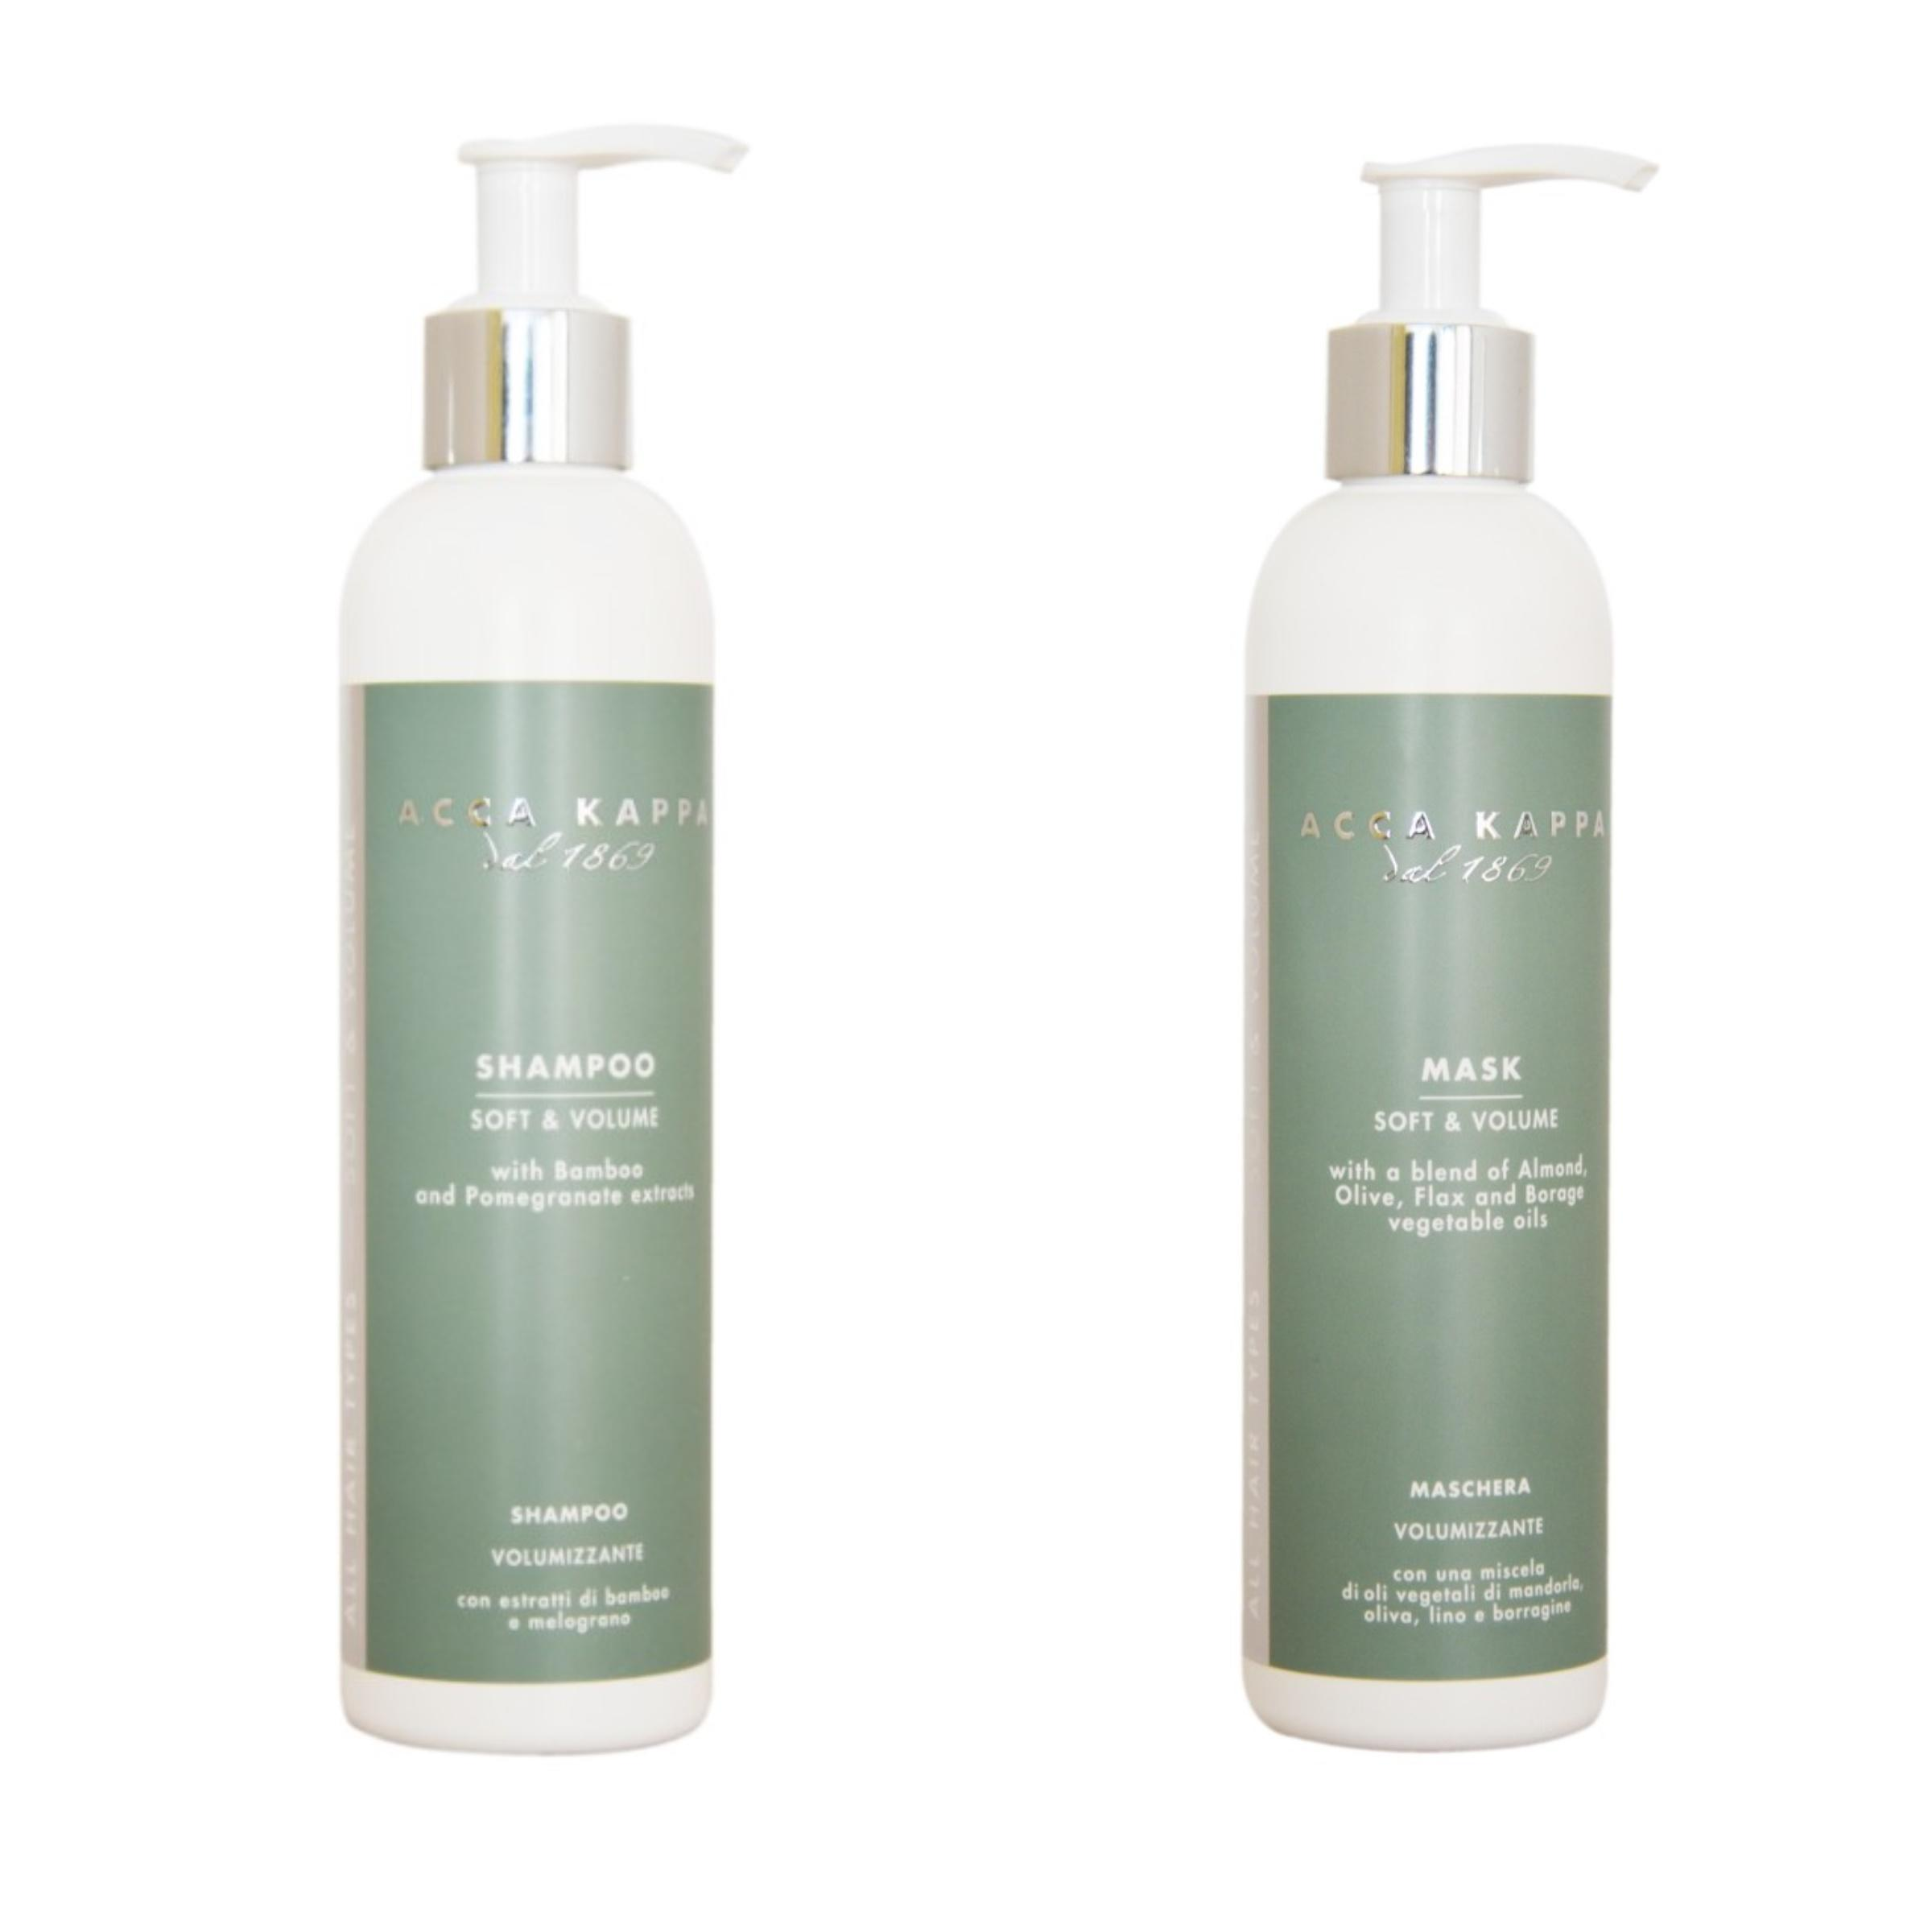 The Soft & Volume Shampoo and Conditioner/ Mask by ACCA KAPPA